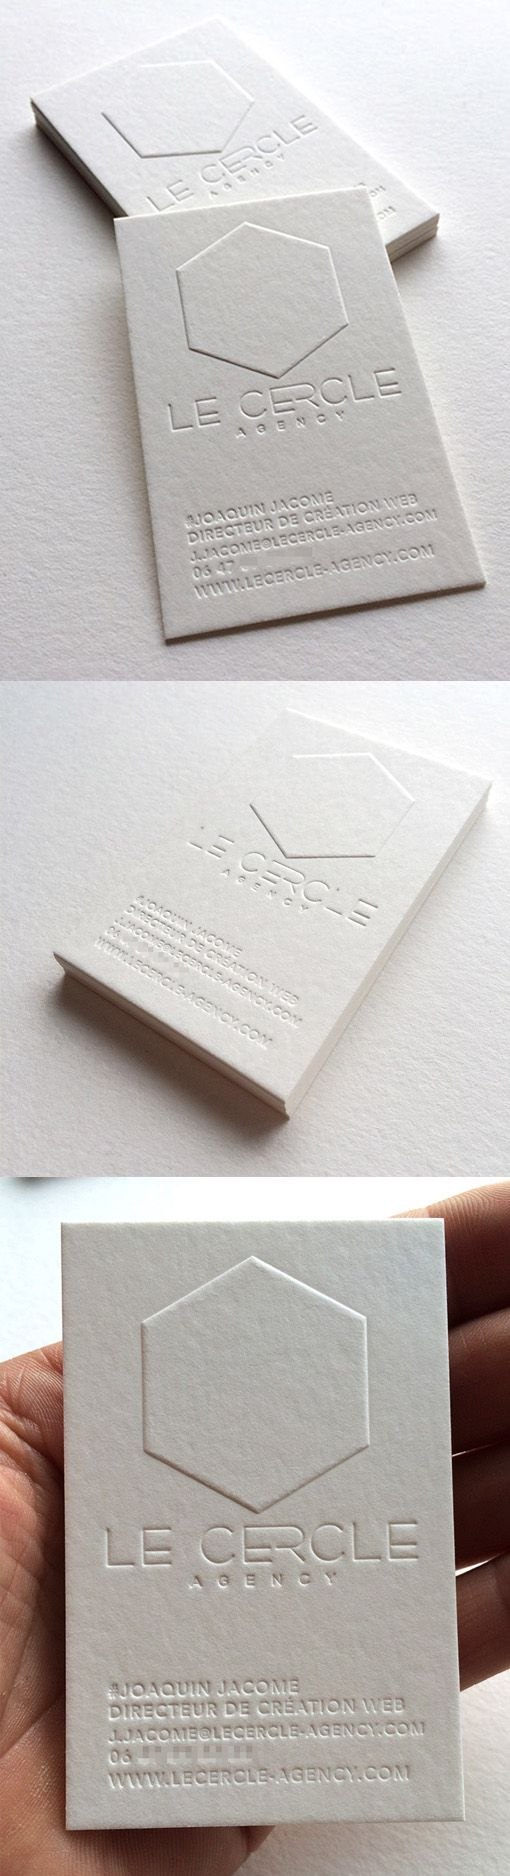 Pure White Embossed Minimalist Letterpress Business Card For A Creative Agency || Weekly business card design for everyone! Introducing Moire Studios a thriving website and graphic design studio. Feel Free to Follow us @moirestudiosjkt to see more outstanding pins like this. Or visit our website www.moirestudiosjkt.com to know more about us. #businessCardDesign #graphicDesign ||